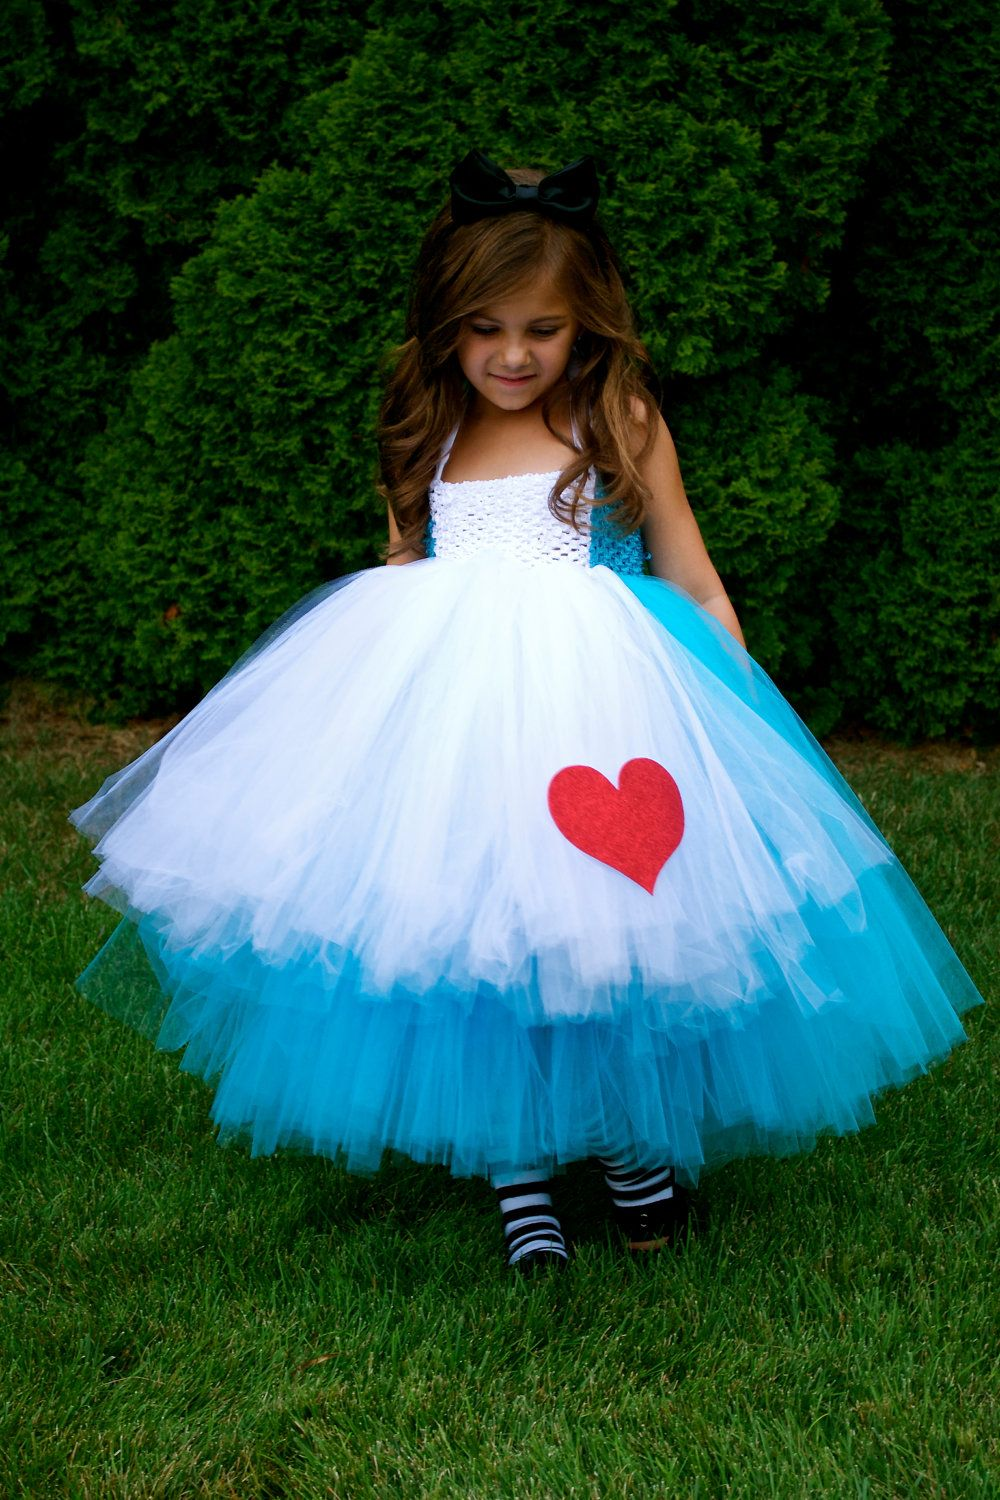 ced3c59b6c3 Alice in Wonderland!!! I like how a large amount of tulle can be added to  any dress for a little girl s costume to make her feel like a princess.